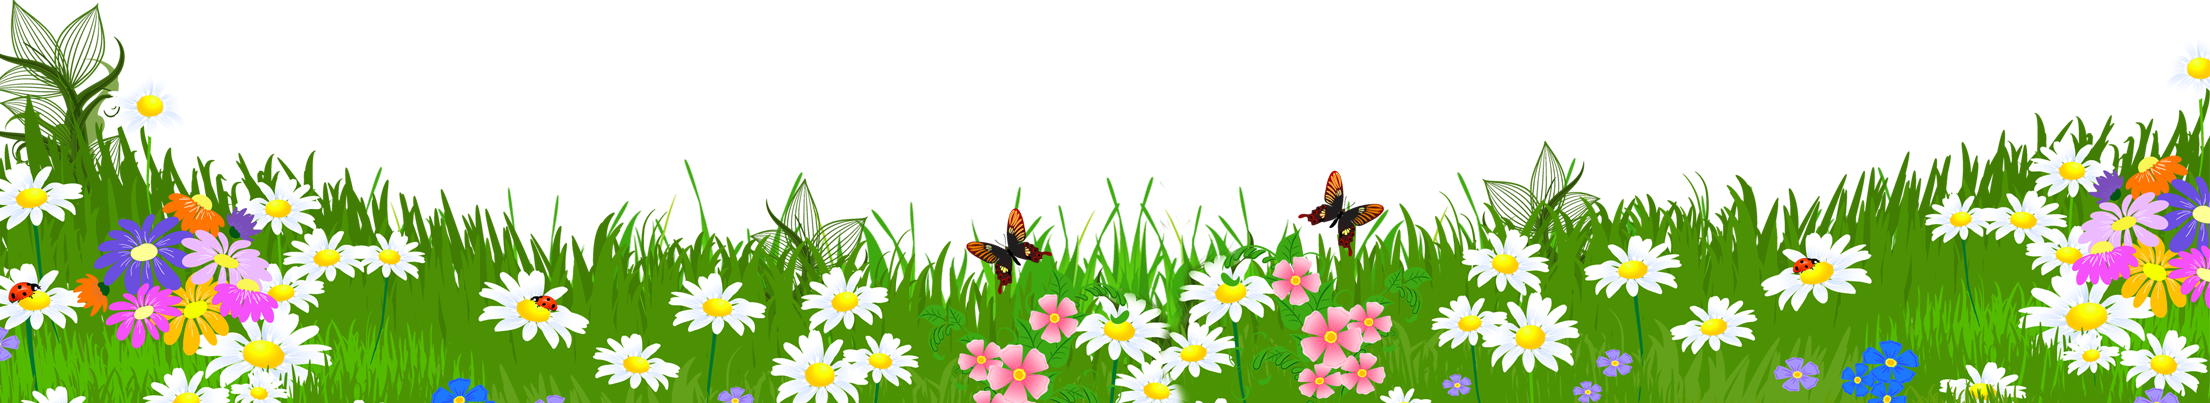 grass border png